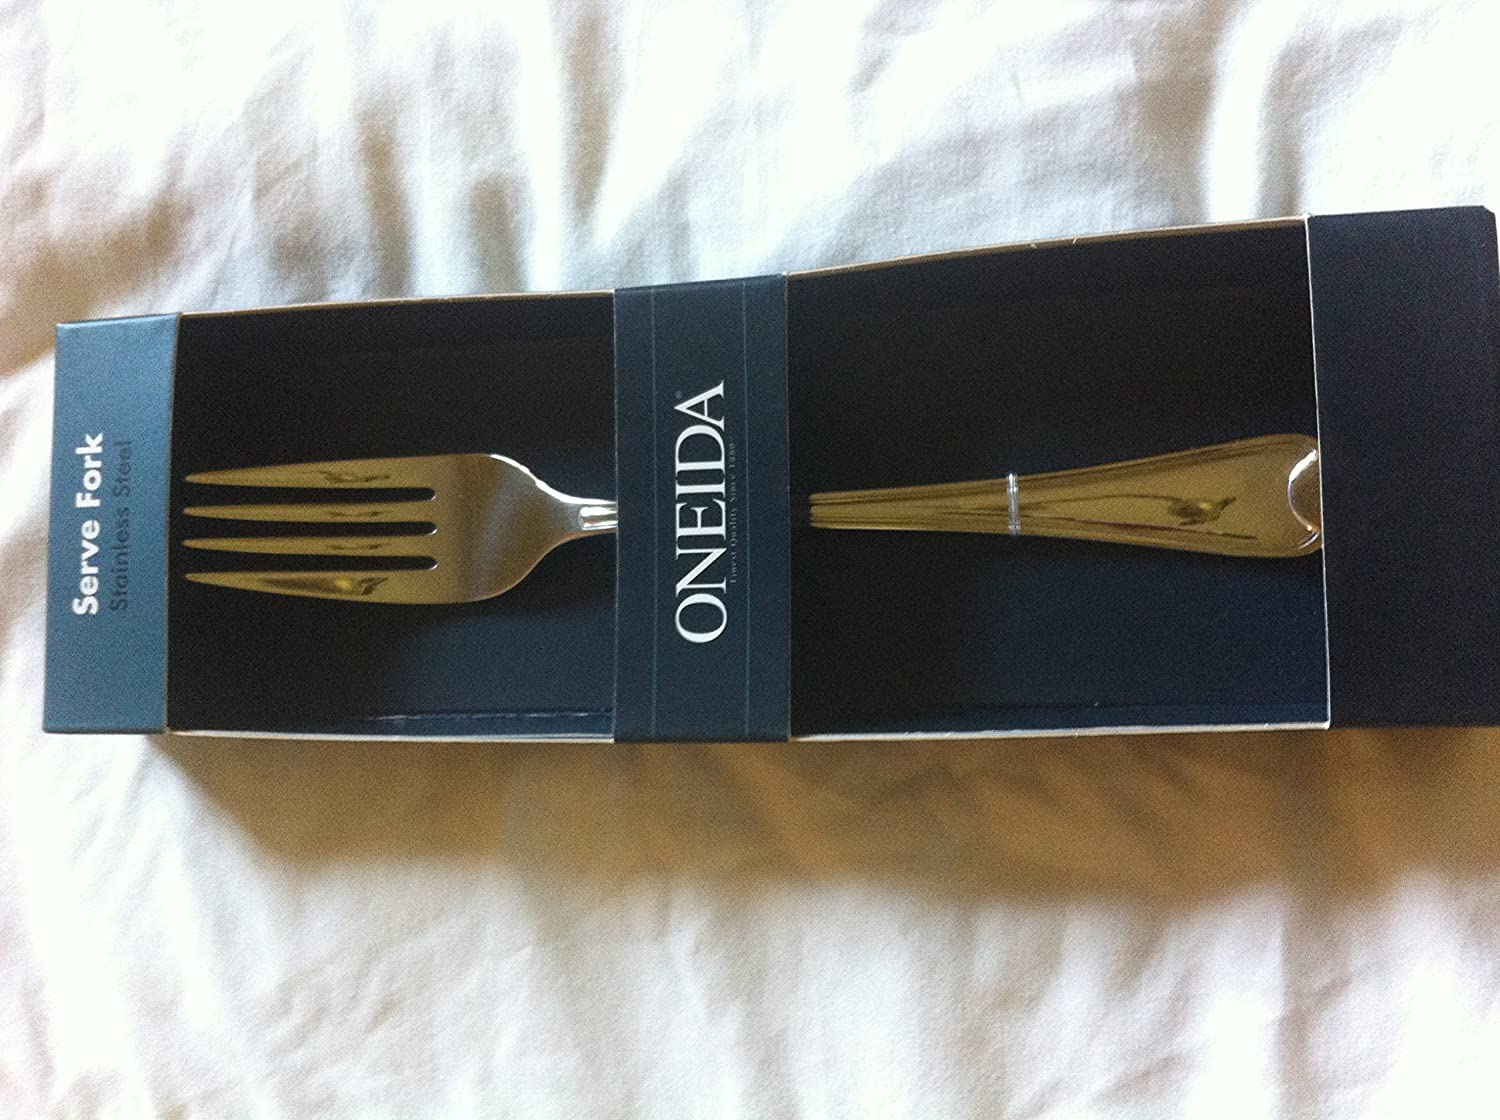 Oneida 'Flambe' Stainless Steel Serve Fork